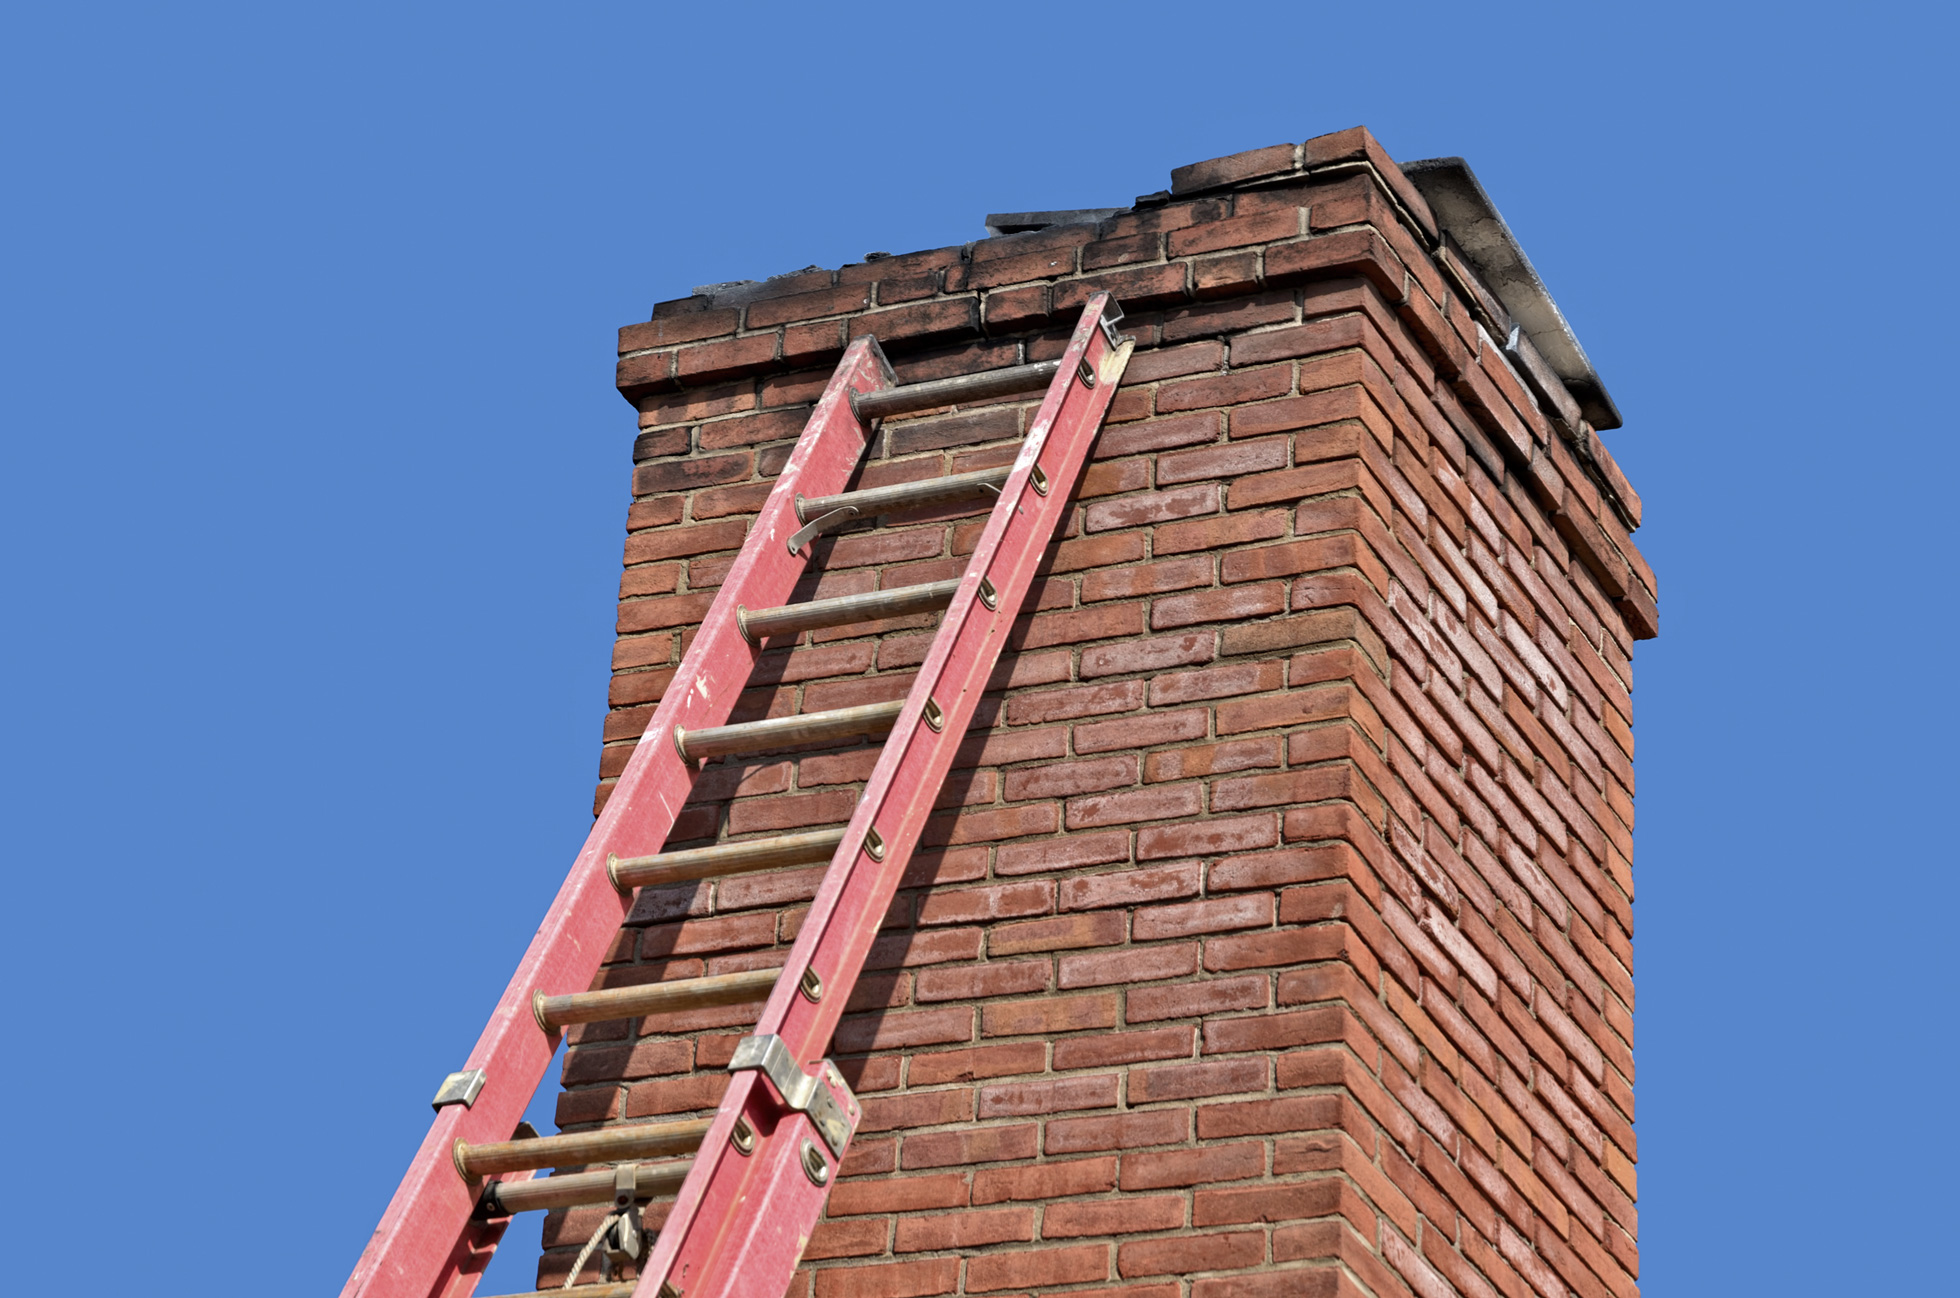 An old chimney with a ladder leaning against it